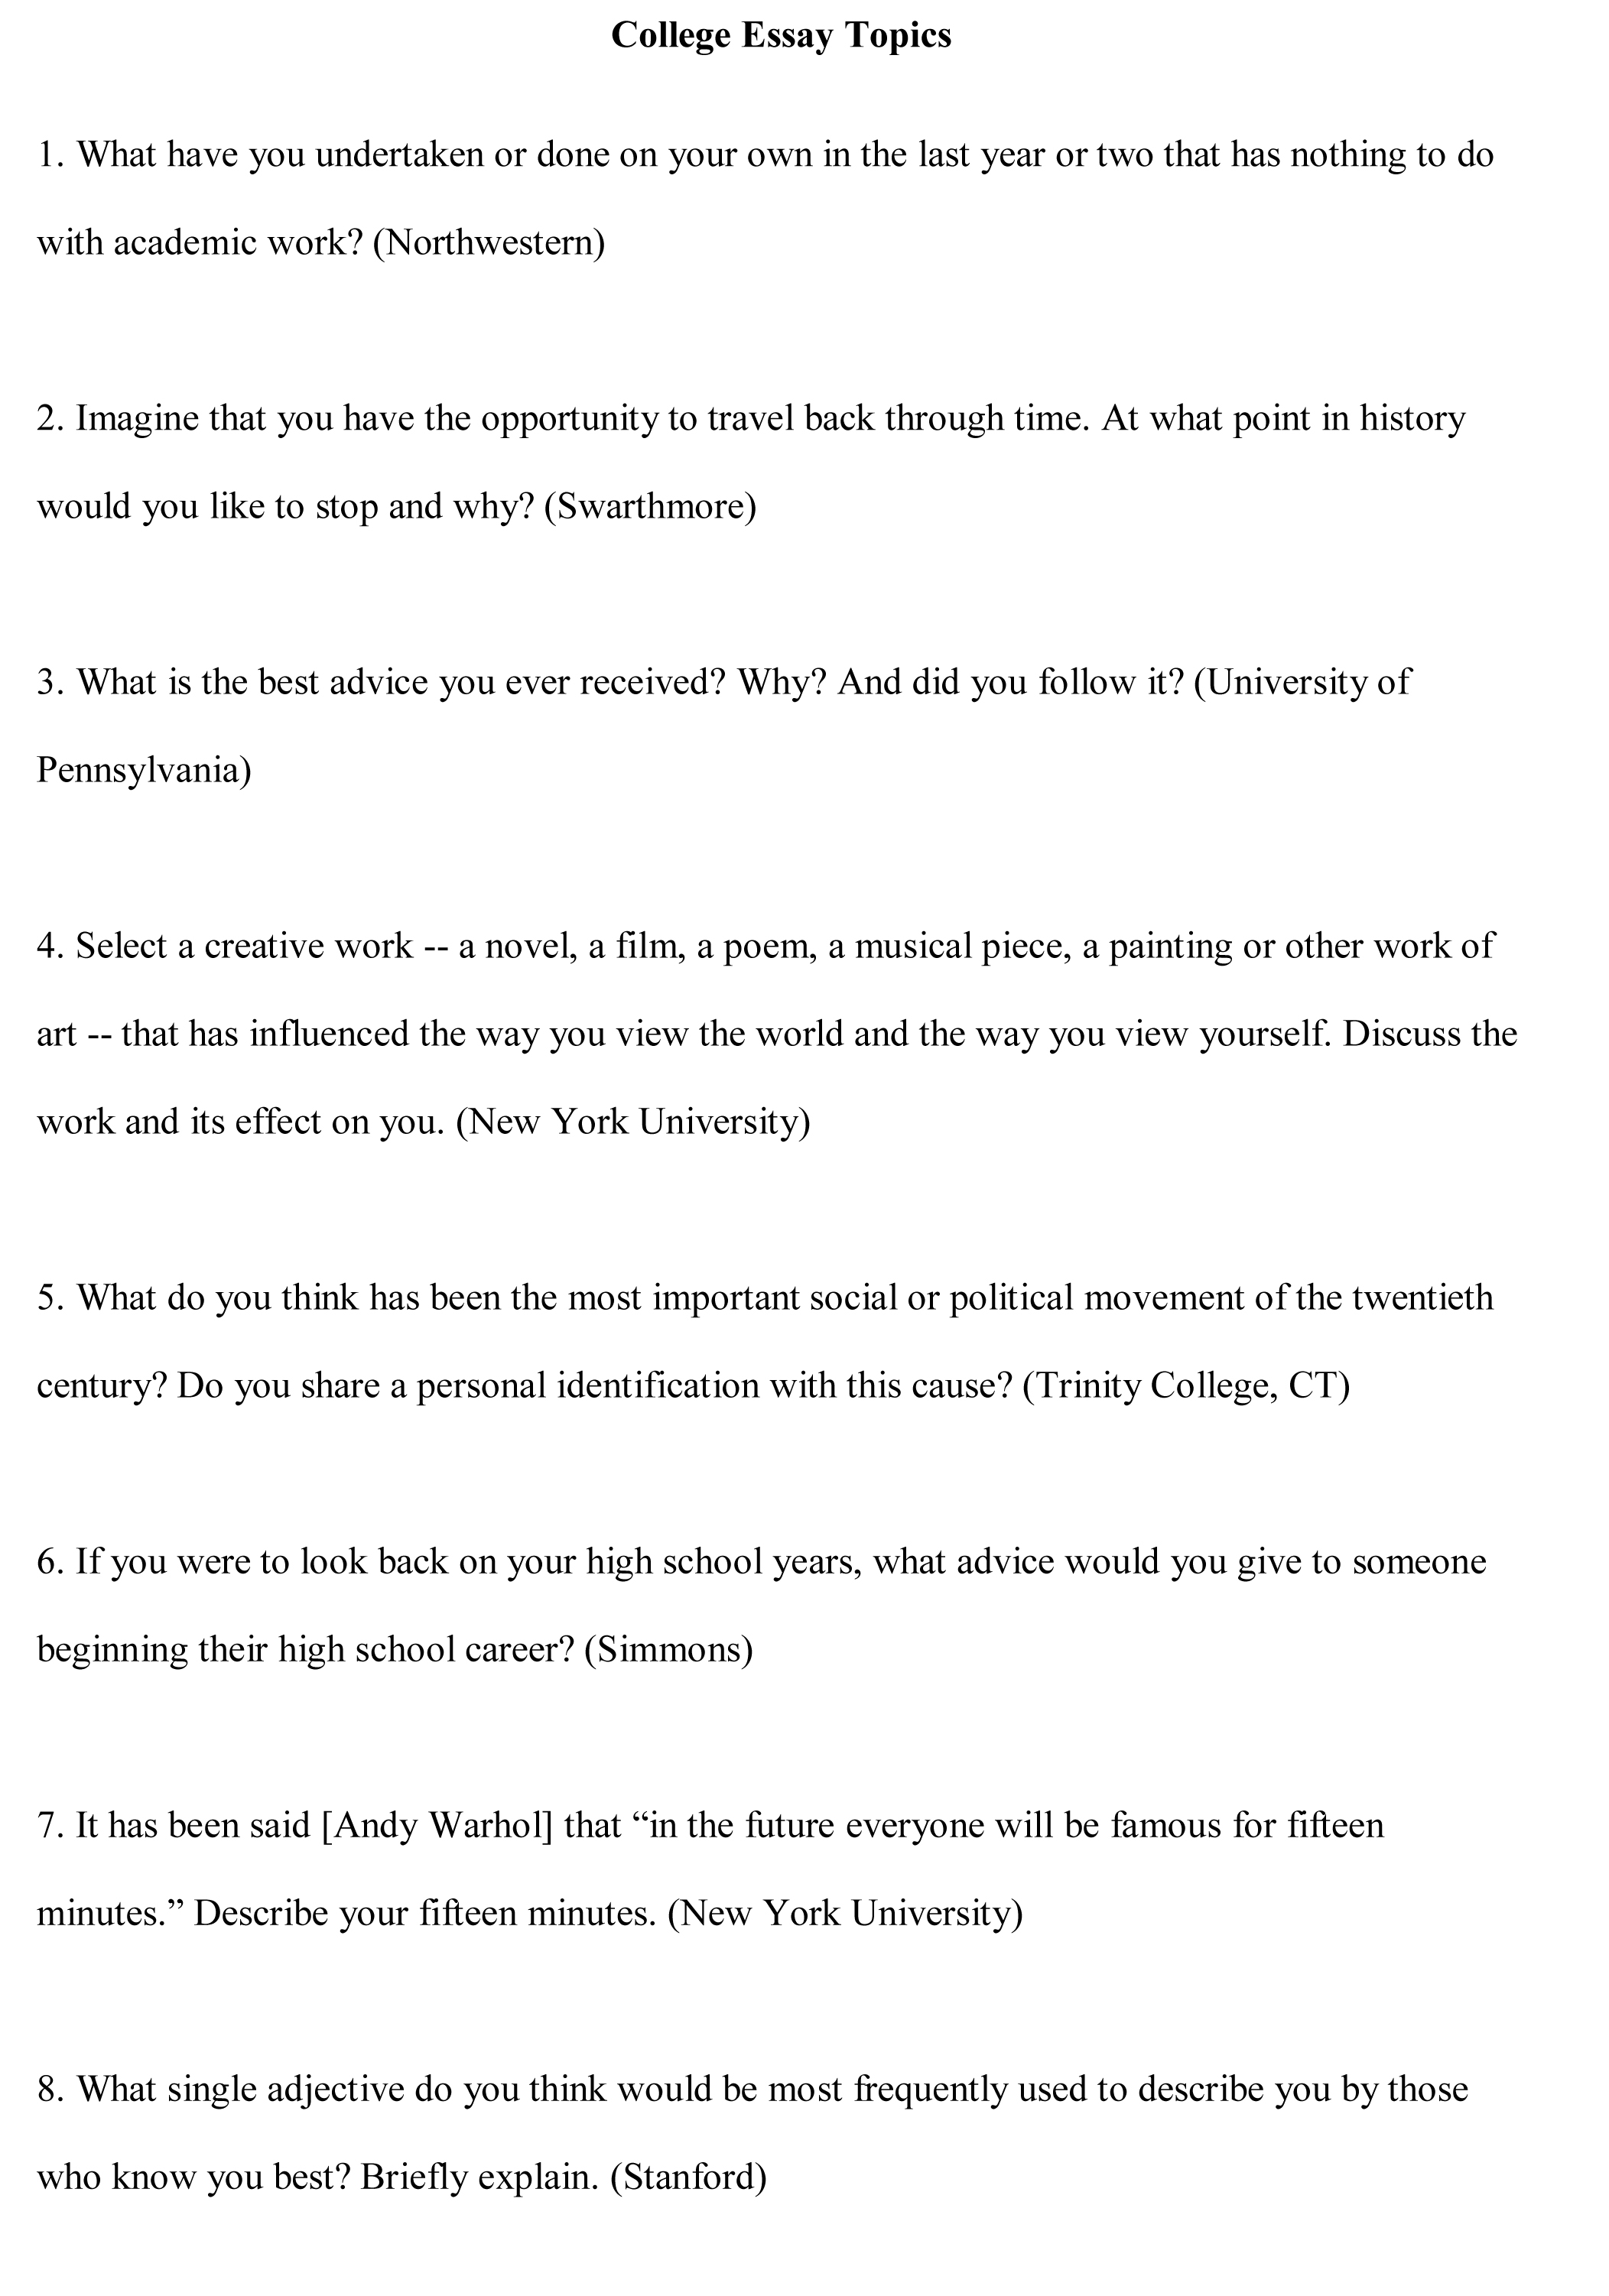 019 Essay Example College Topics Free Sample1 Informative Frightening Examples For High School Pdf Full